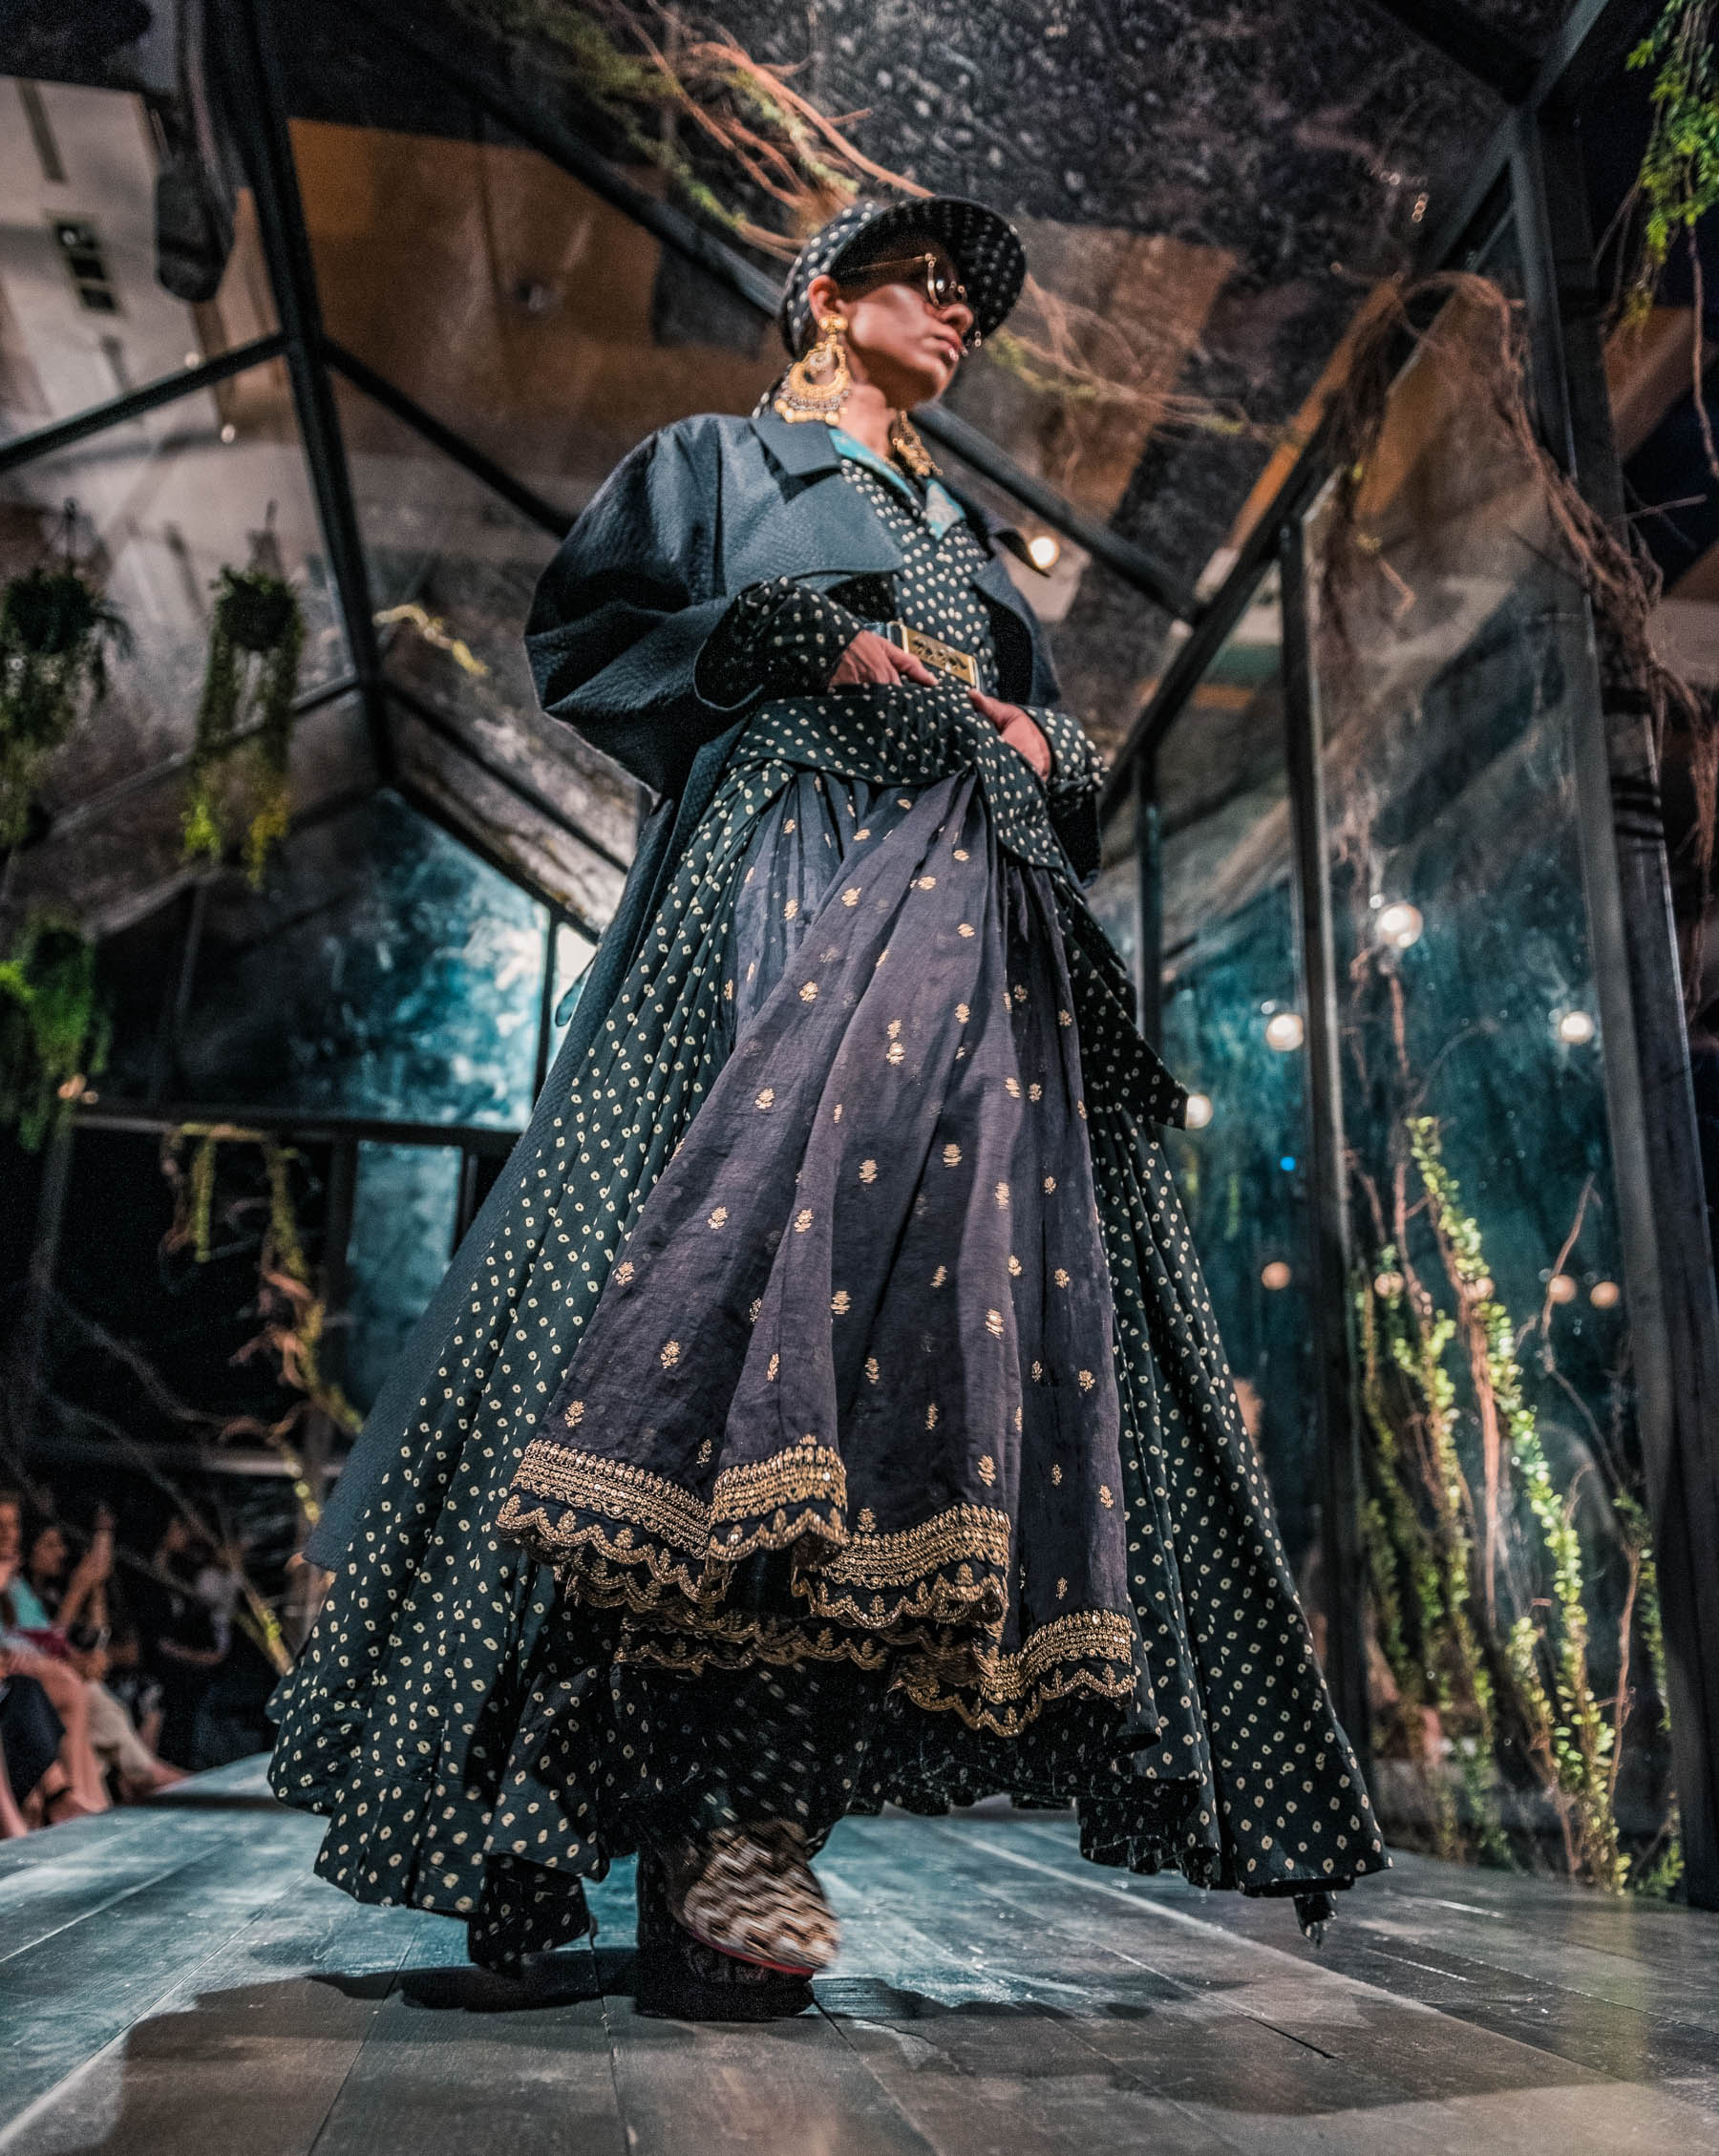 20YearsOfSabyasachi, 20 Years of Sabyasachi, Sabyasachi Couture, Sabyasachi Fashion Show, Bombay, Grand Hyatt, Photography Assignment, Photography Client, Fashion Photographer, Indian Photographer, International Photographer, Couture Label, International Couture, Luxury Photographer, Lifestyle Photographer, Runway Photographer India, Ramp Photographer, Runway Photography